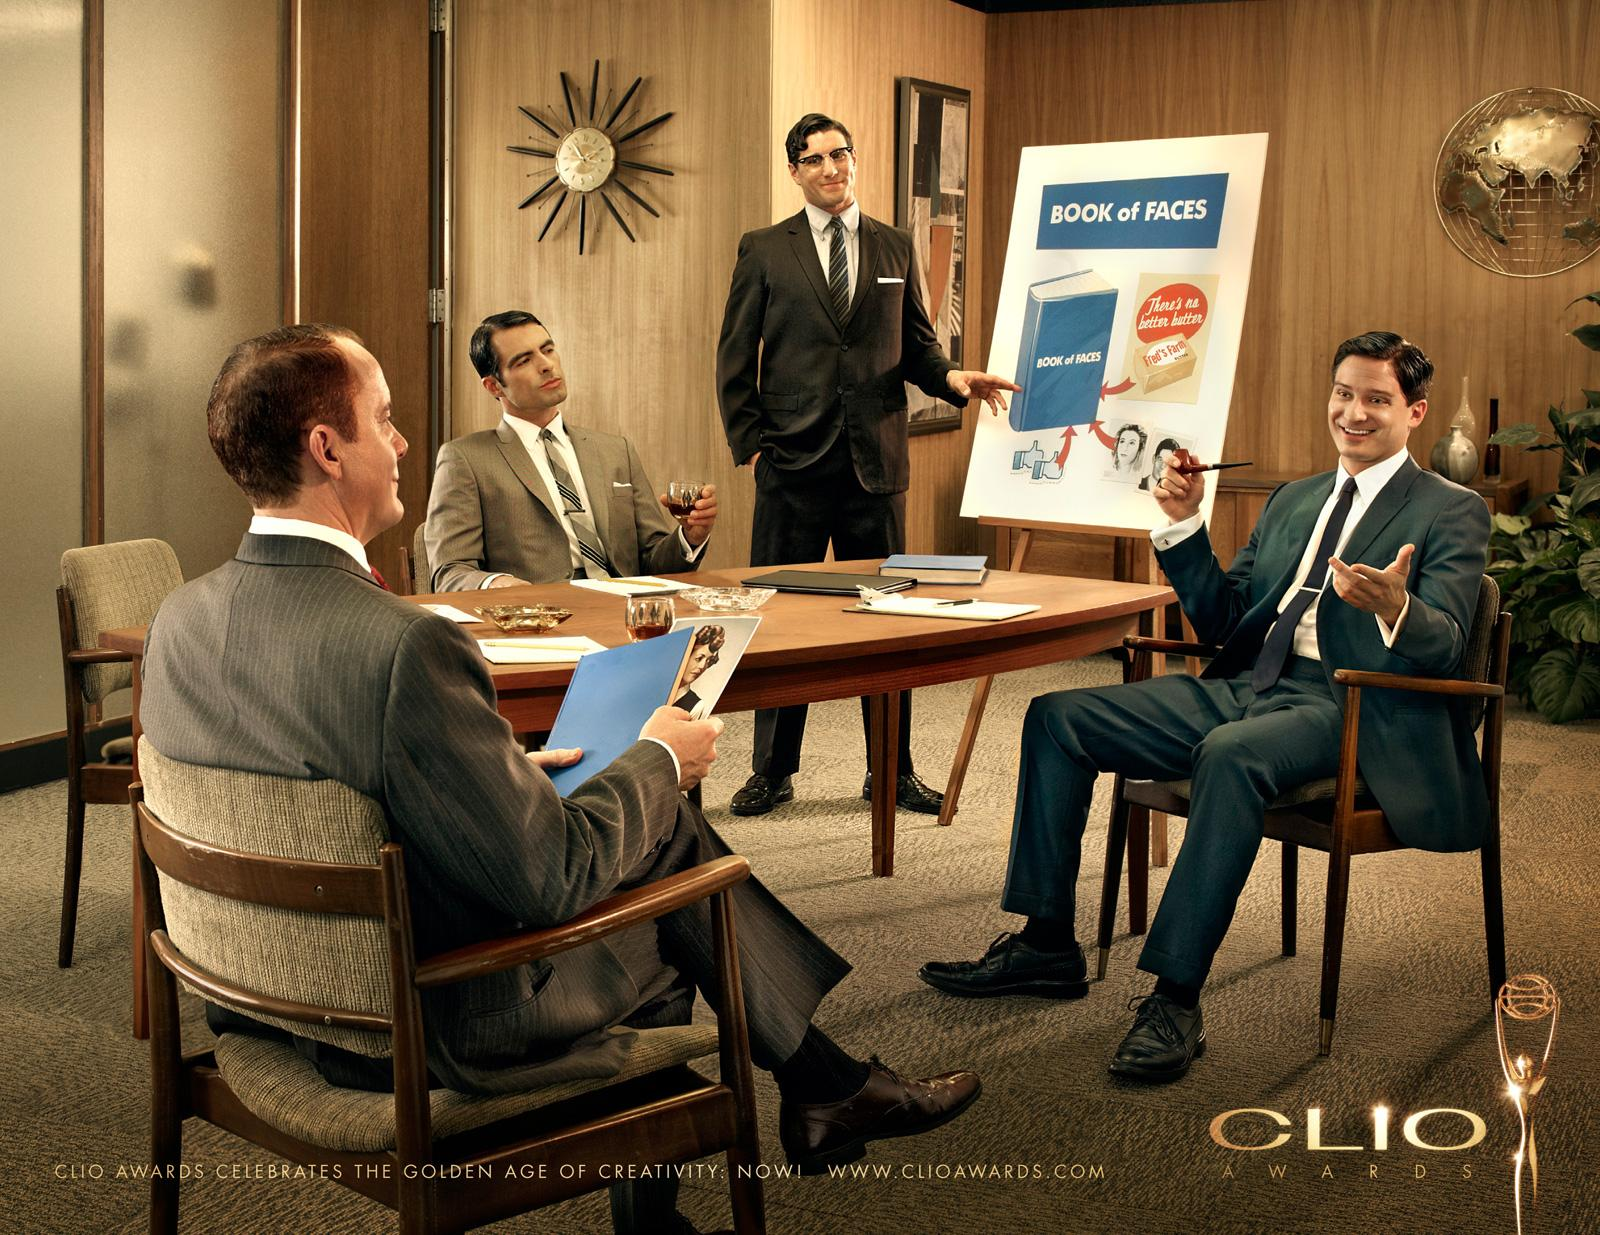 CLIO Awards Print Ad -  Book of Faces